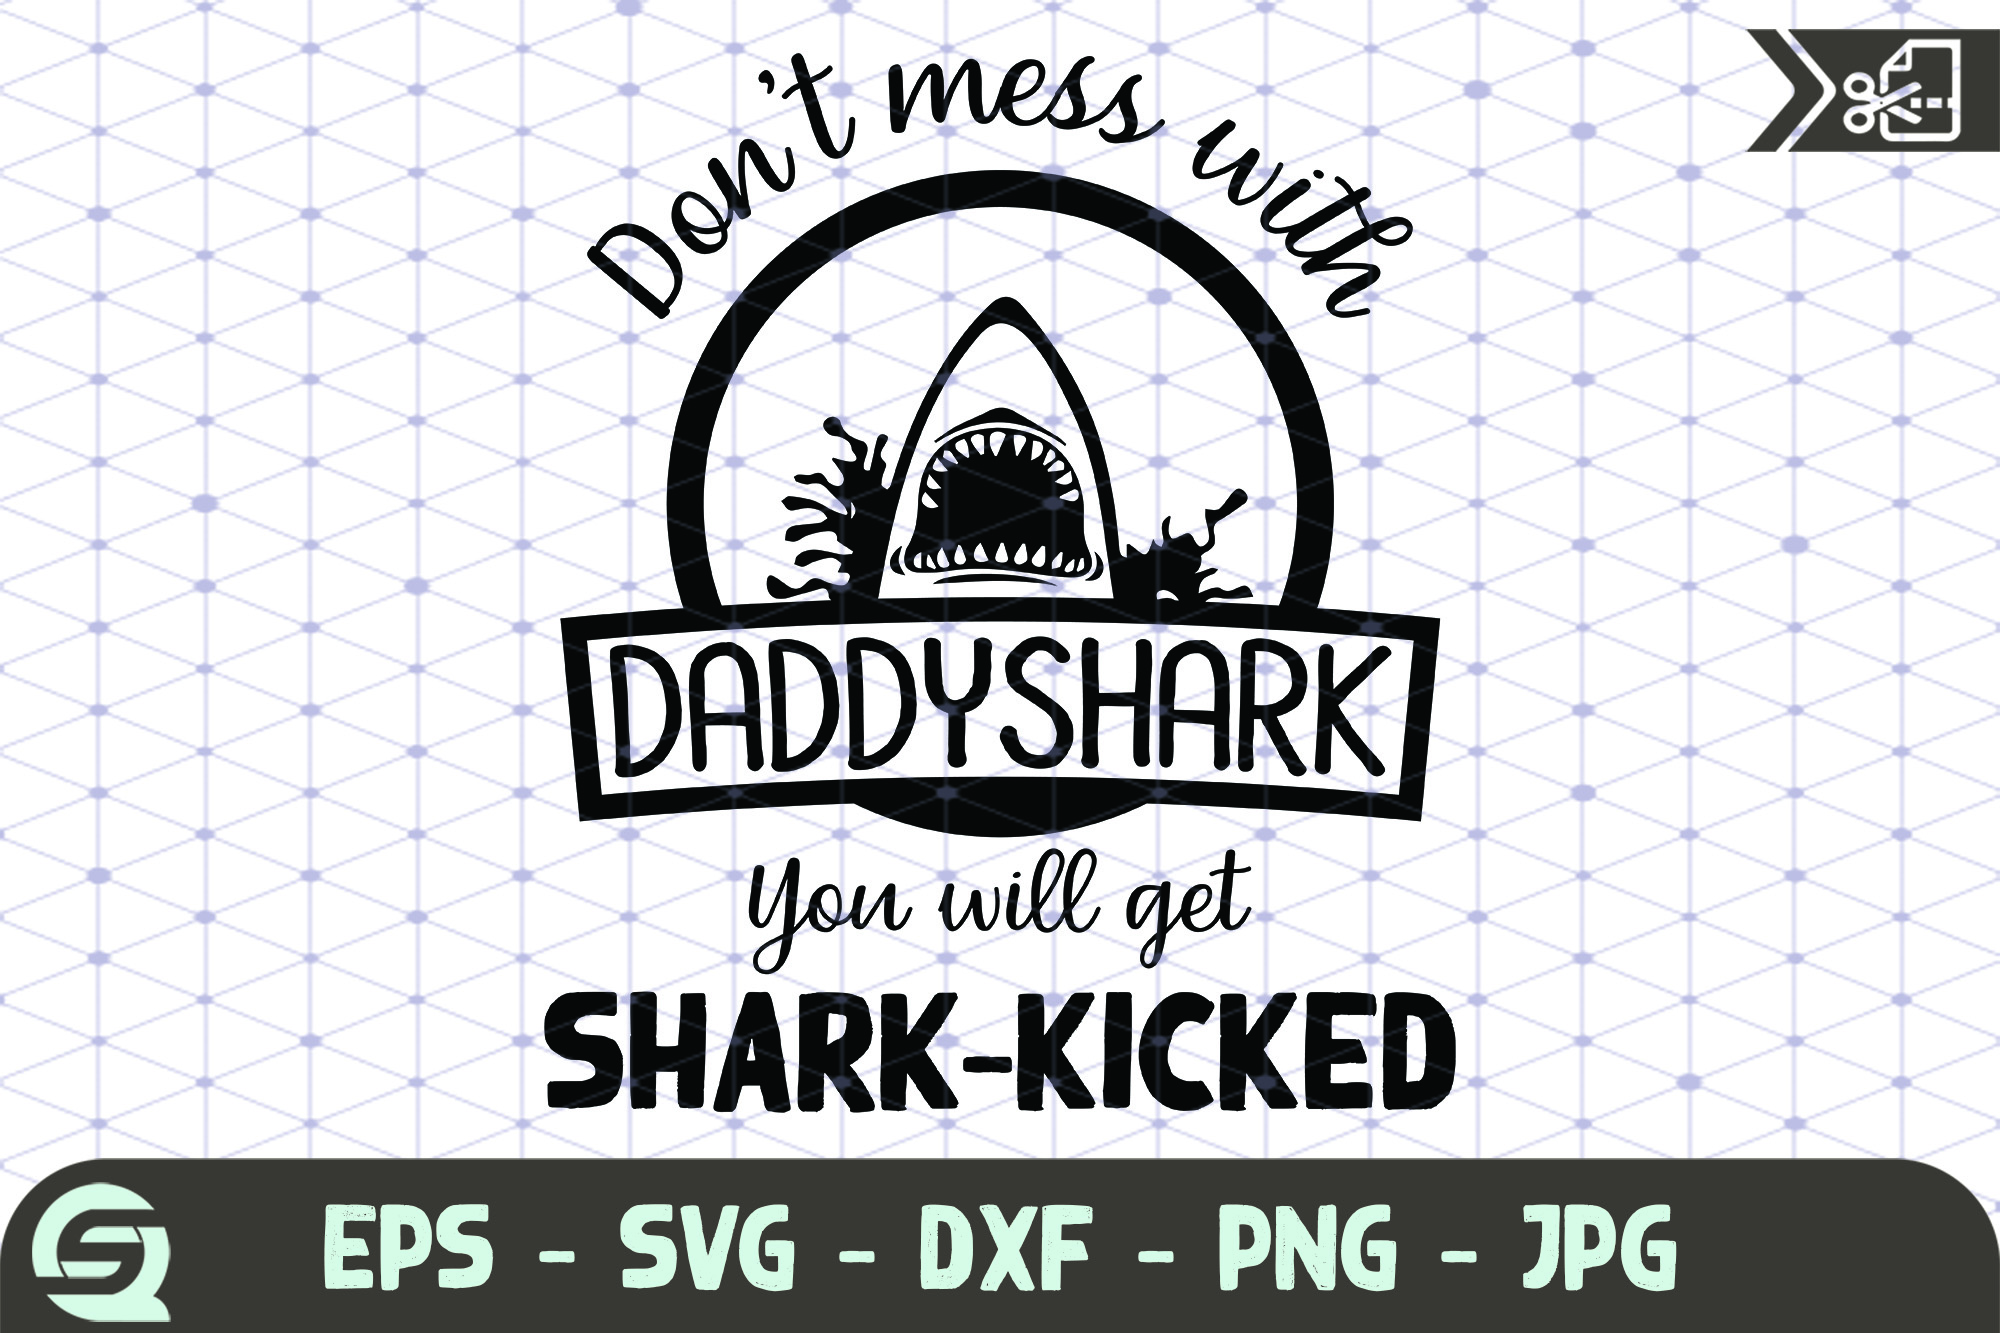 Download Free Don T Mess With Mamashark You Will Get Graphic By Qara Studio for Cricut Explore, Silhouette and other cutting machines.